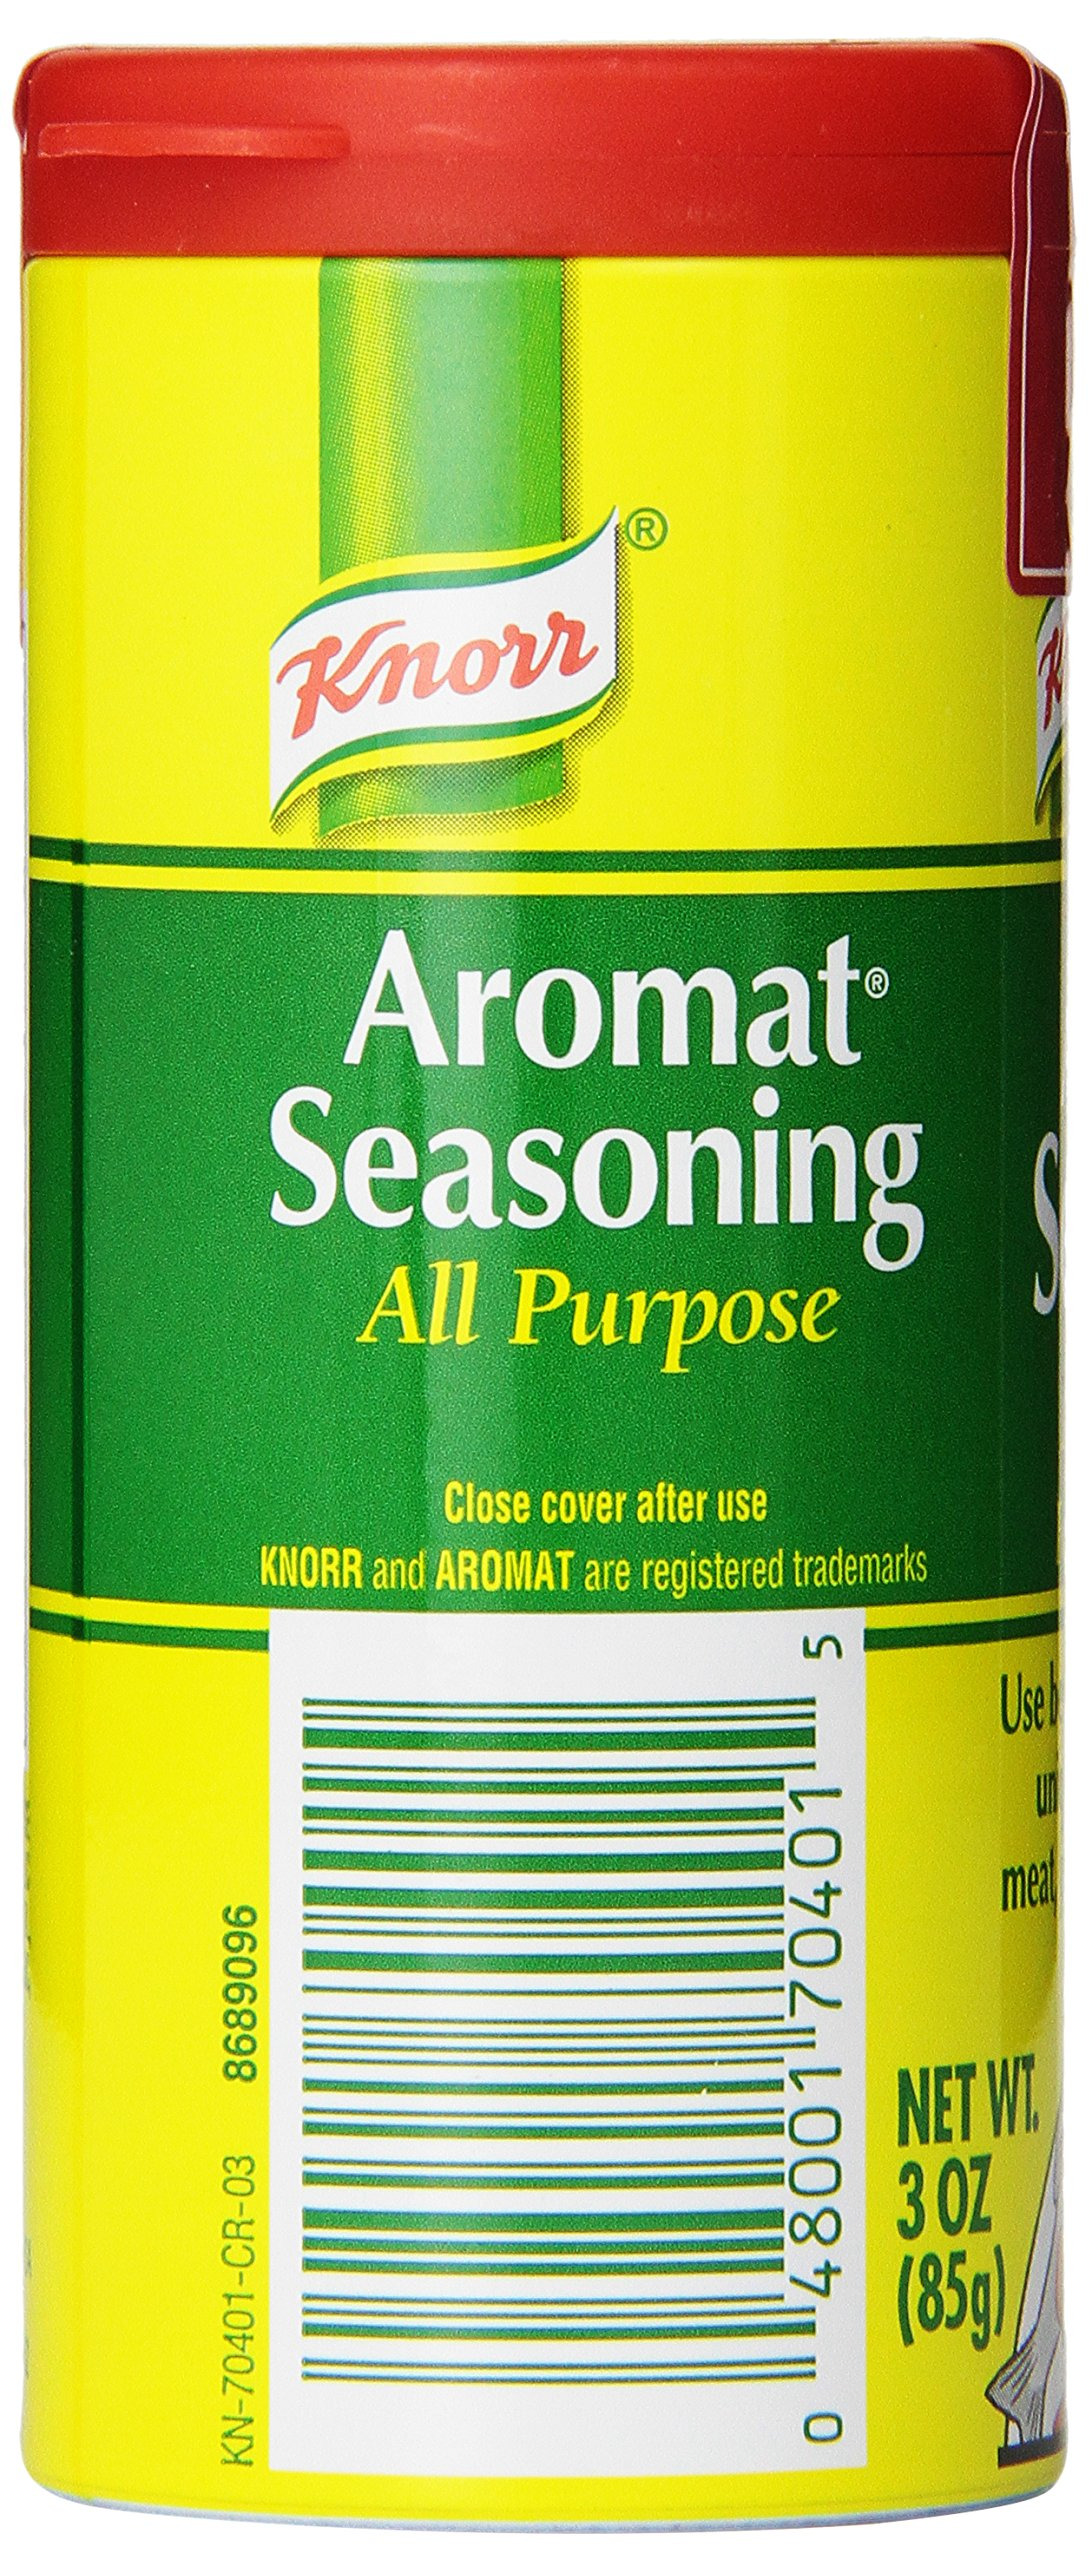 Knorr Aromat Seasoning, 3 Ounce (Pack of 12) by Knorr (Image #4)